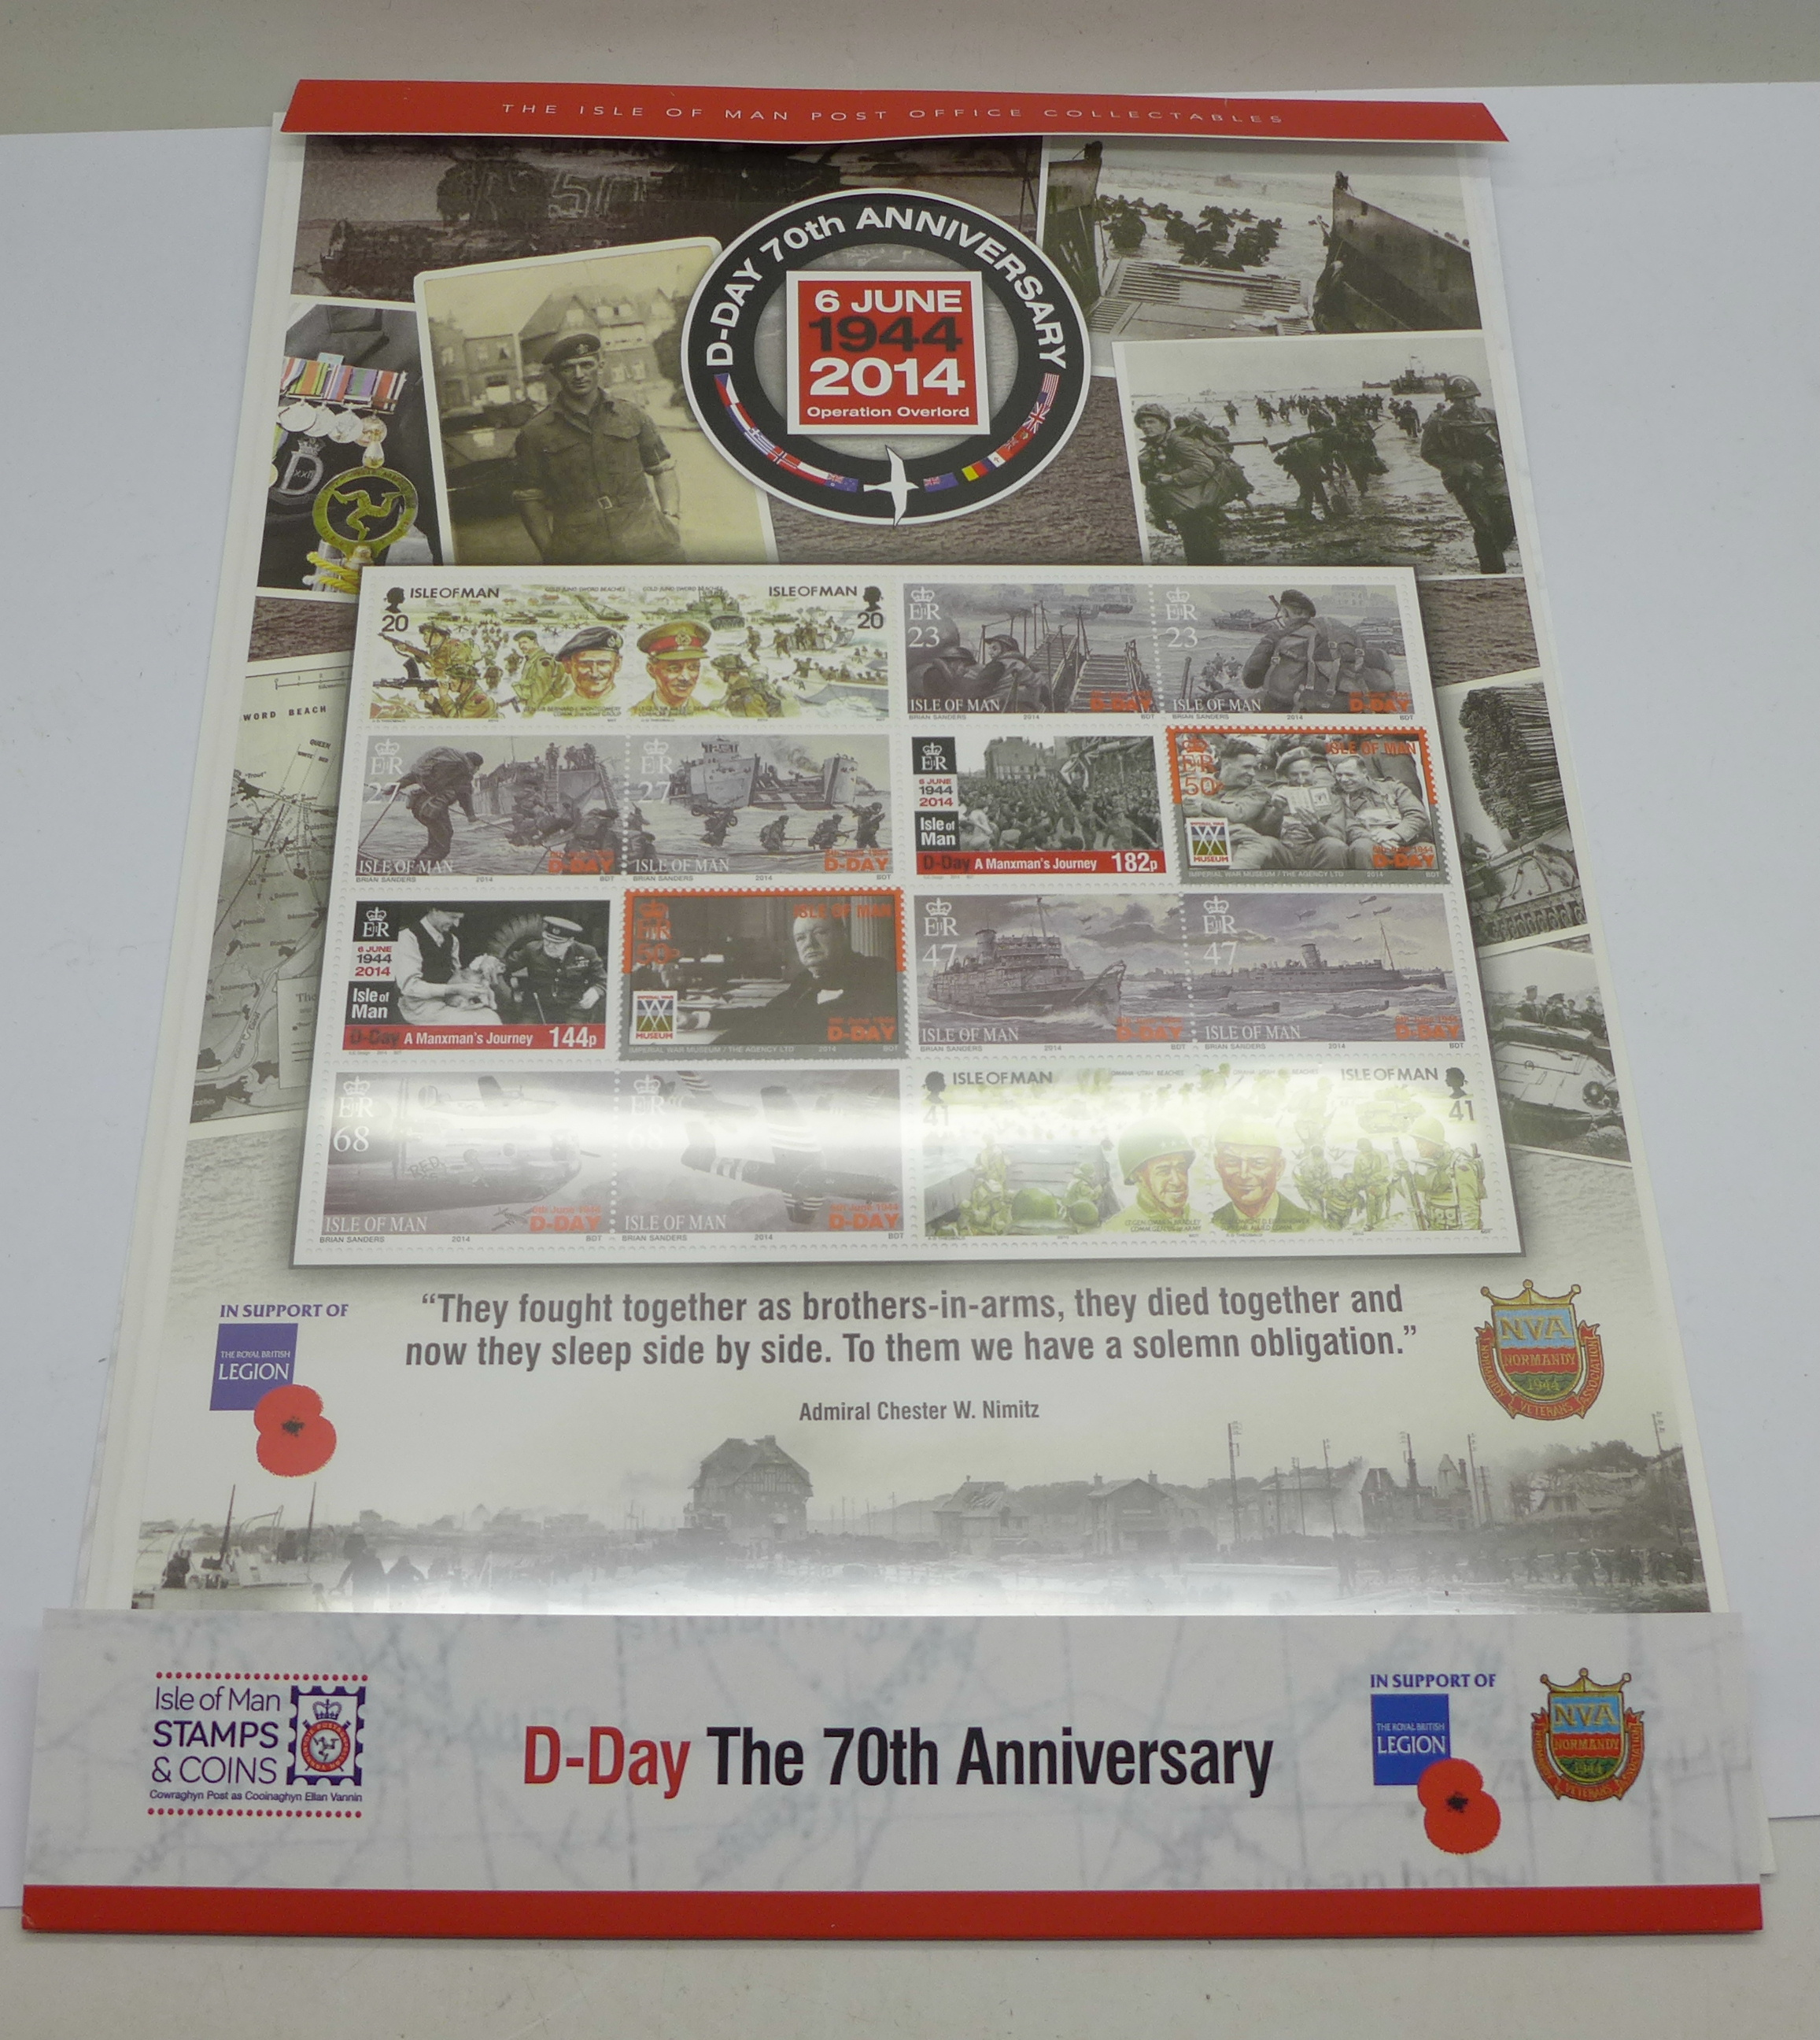 Isle of Man, 2014 D-Day 70th Anniversary 6th June 1944, Operation Overlord, fact sheets, etc.